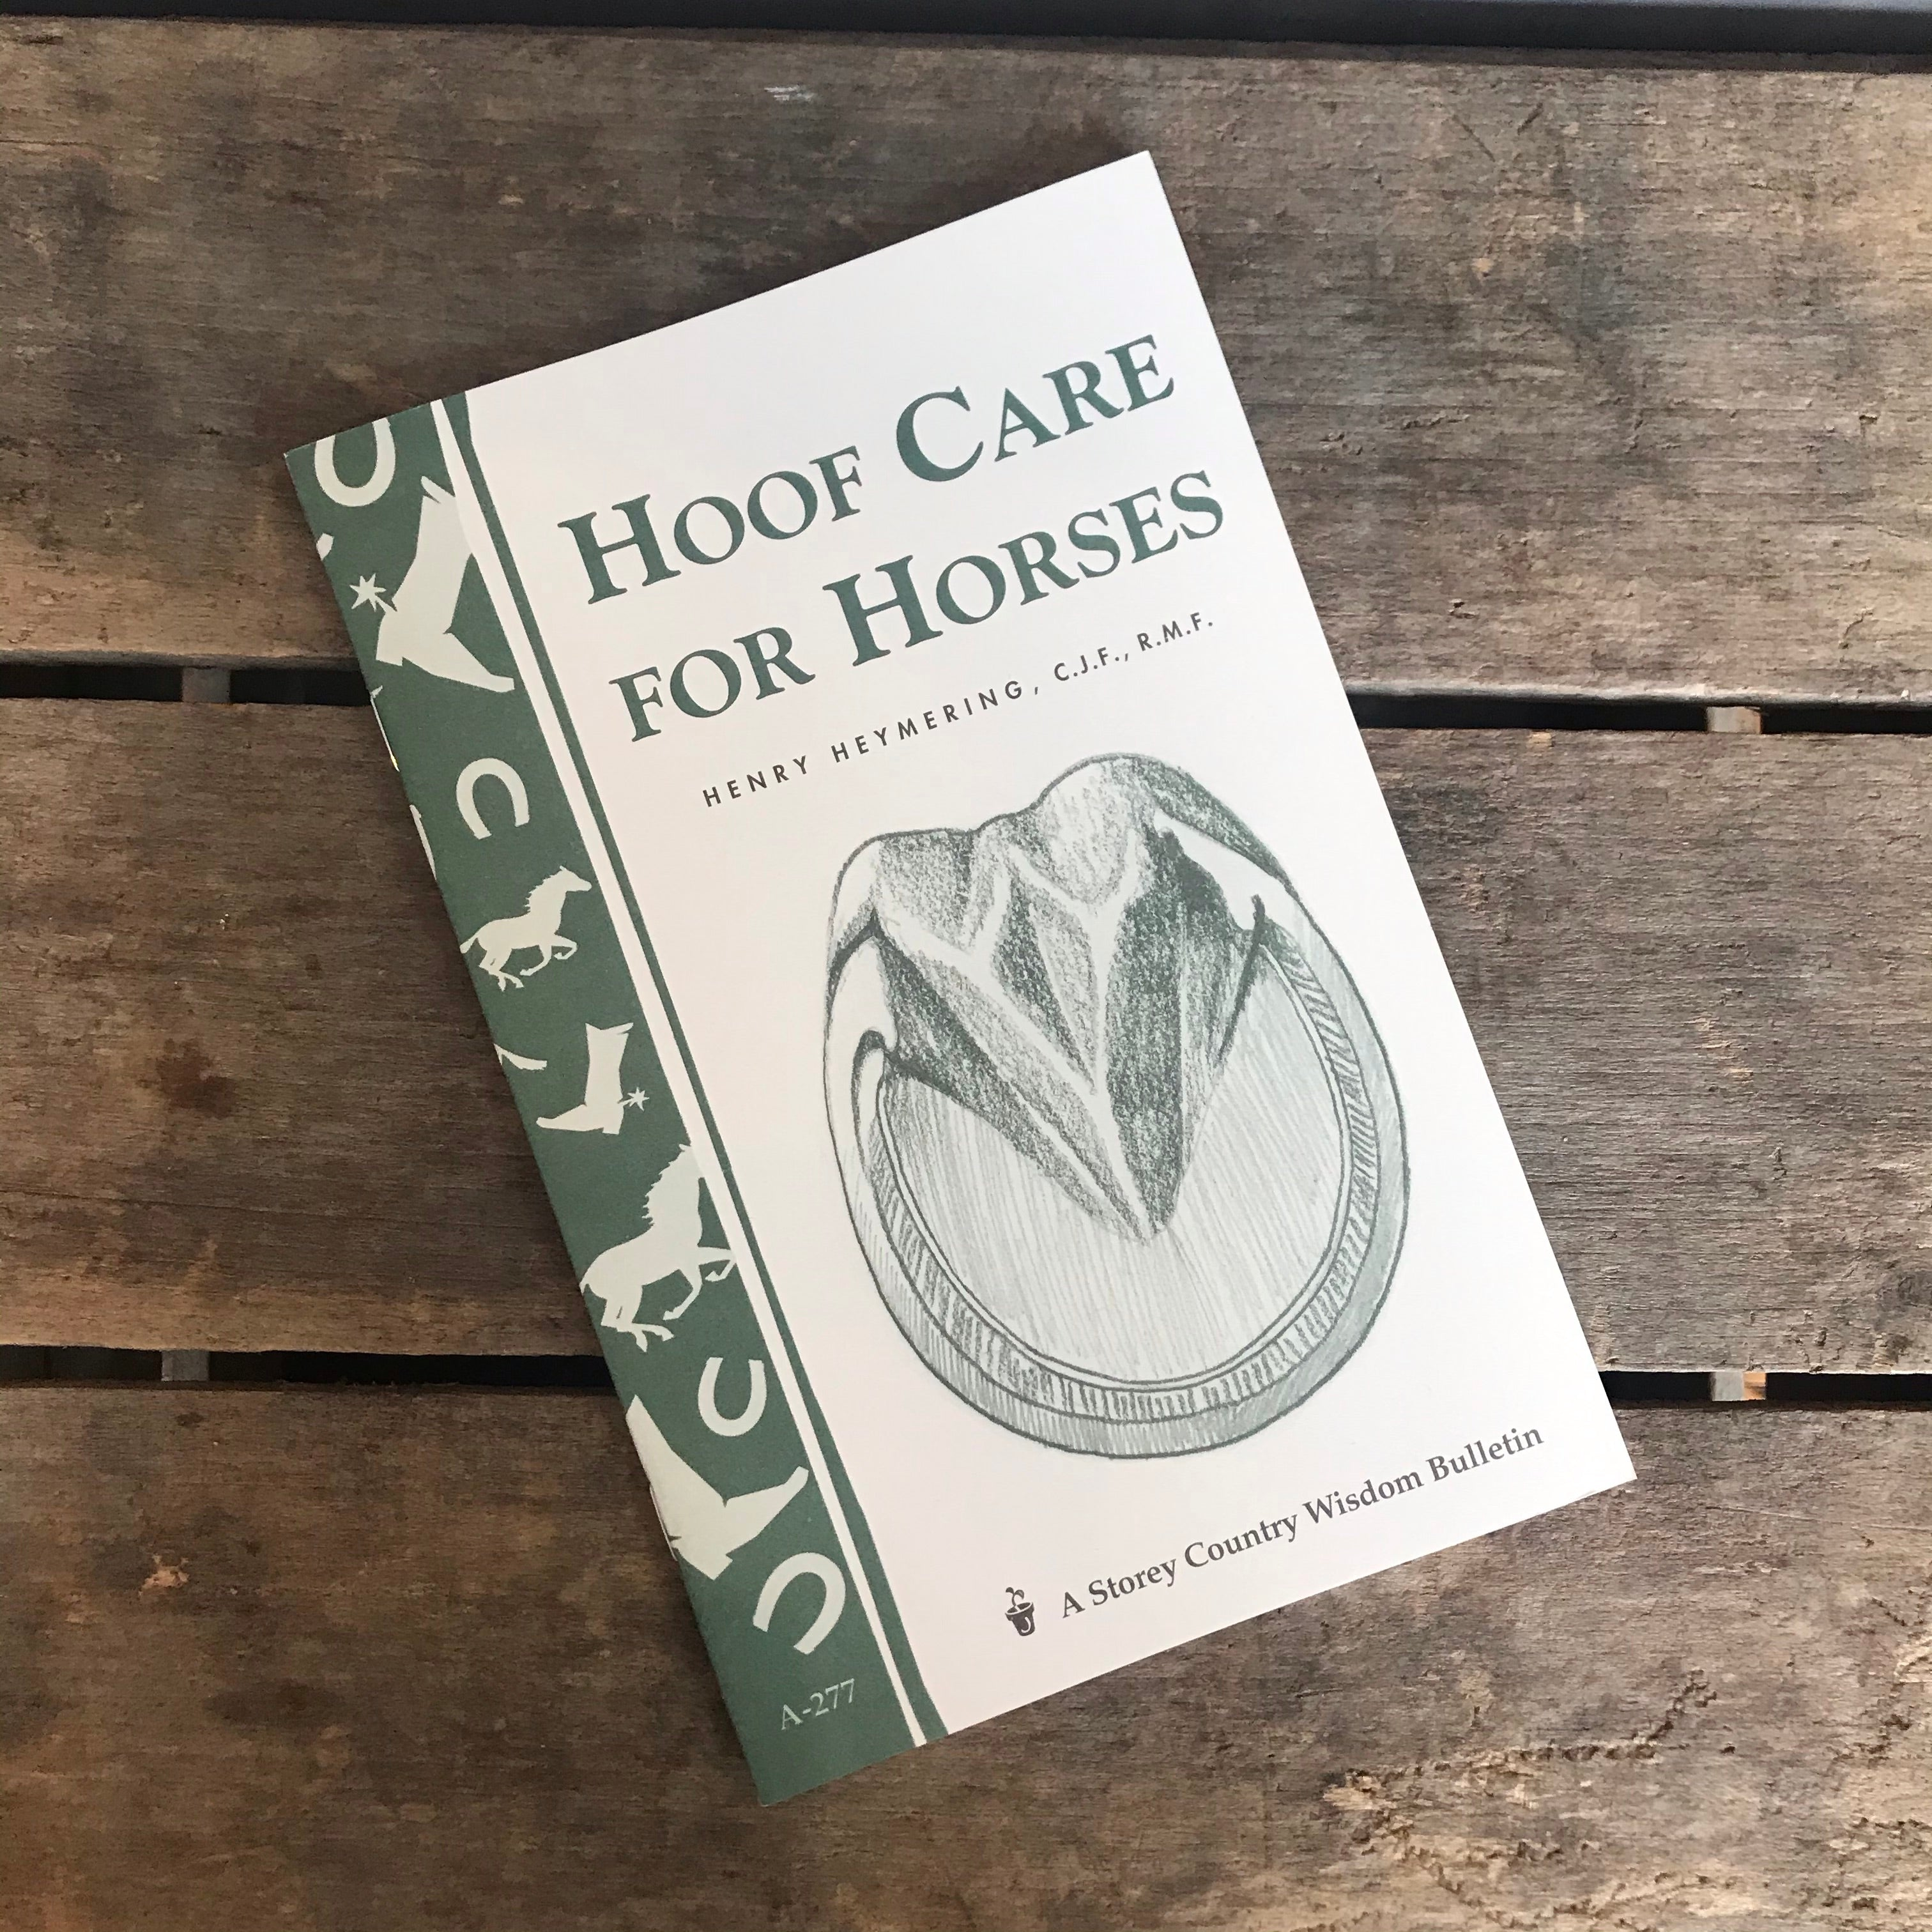 Hoof Care for Horses Booklet